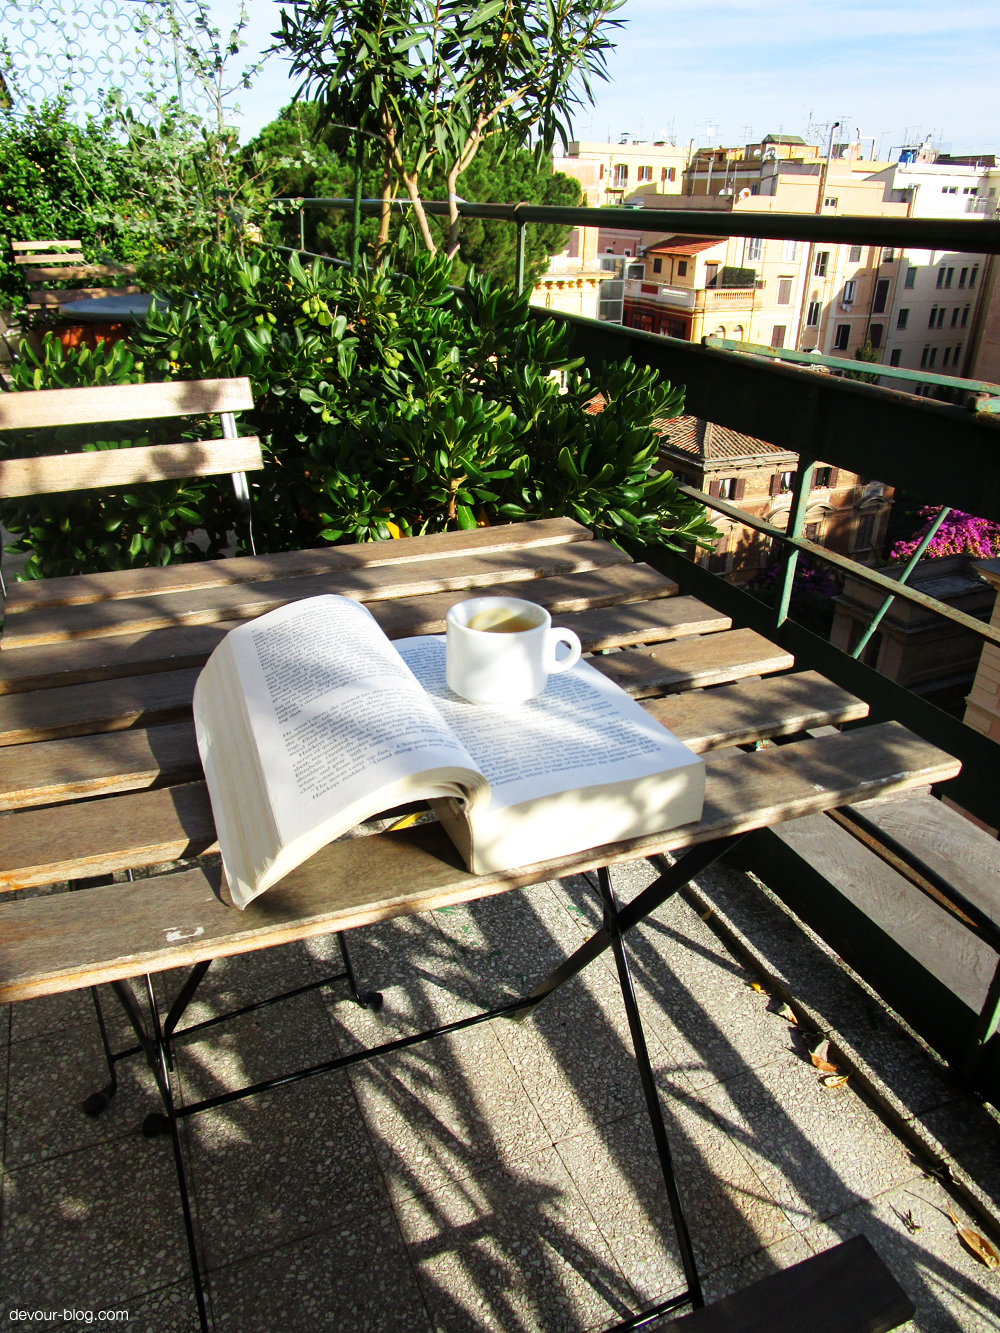 Roman mornings: espresso & a good book on our terrace.